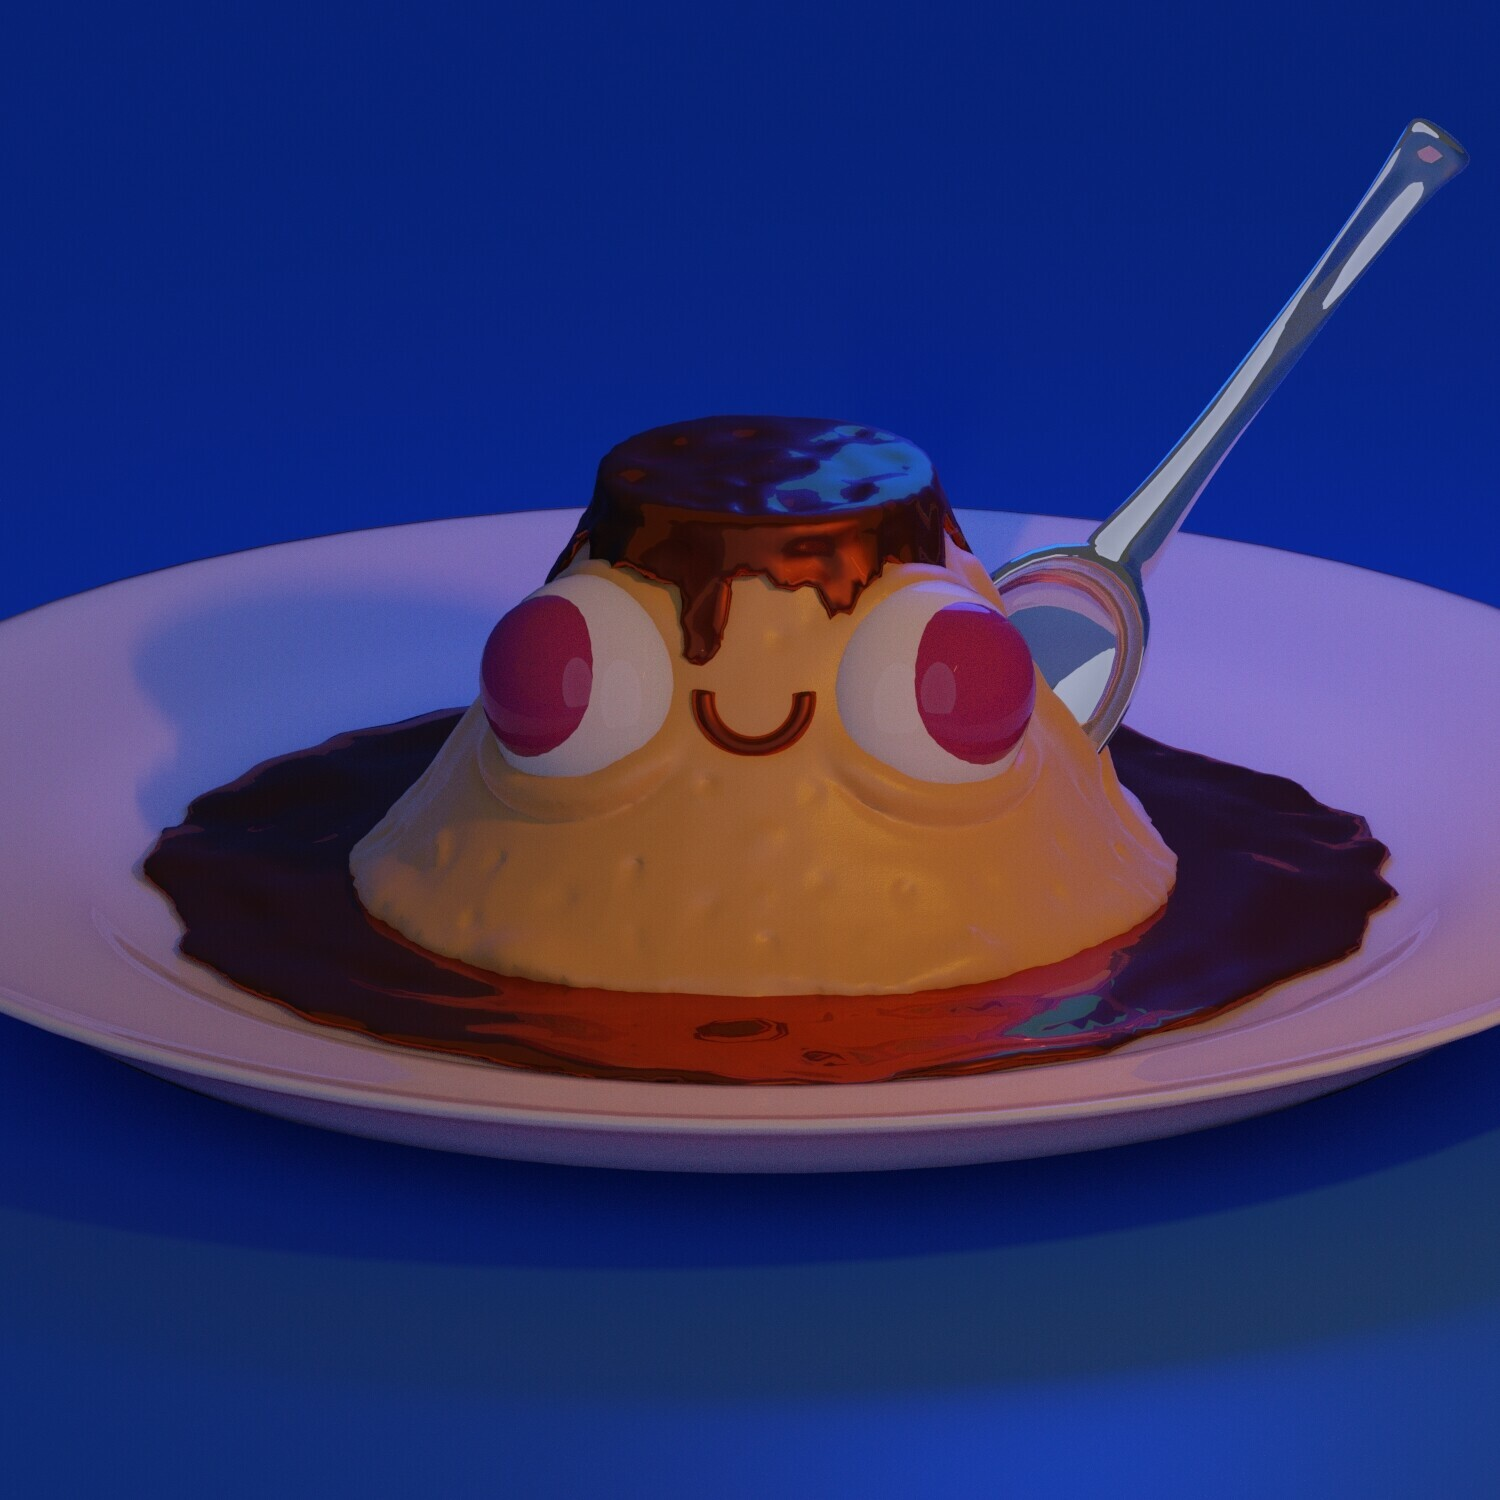 Marcos torres marcos torres pudding3